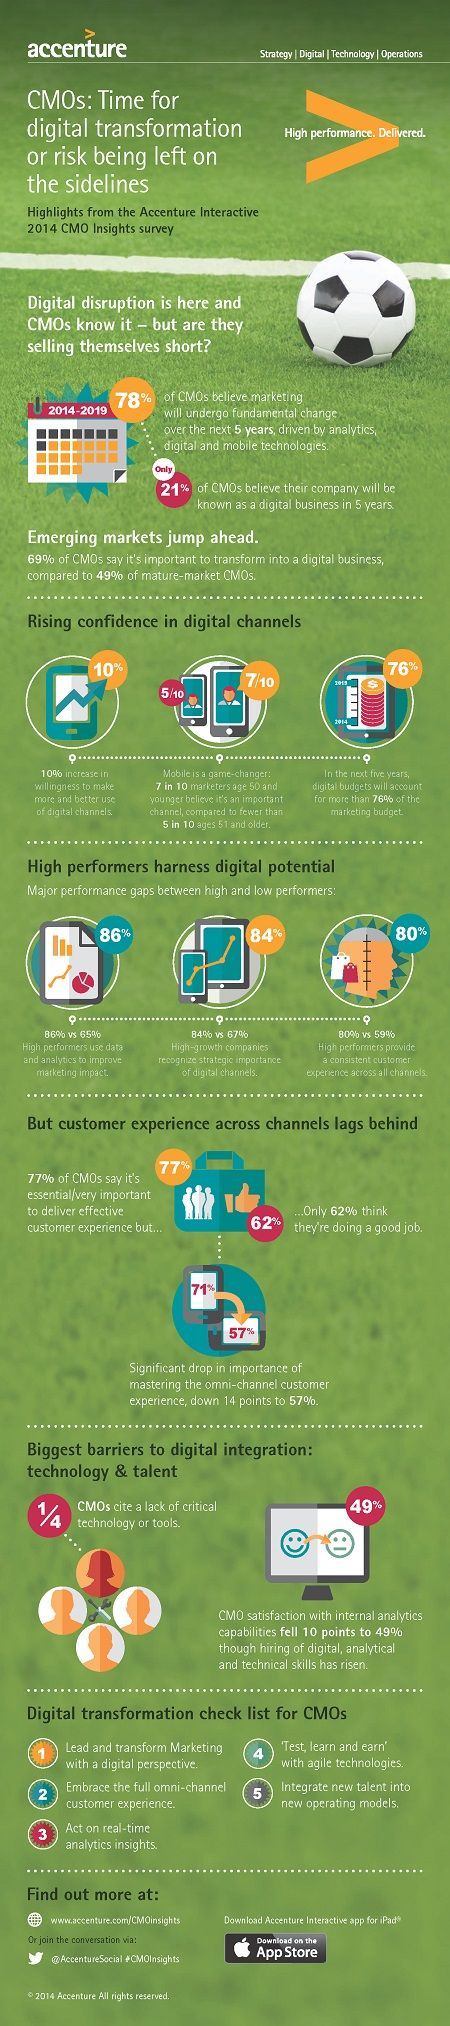 Infographic: Time for digital transformation or risk being left on the sidelines